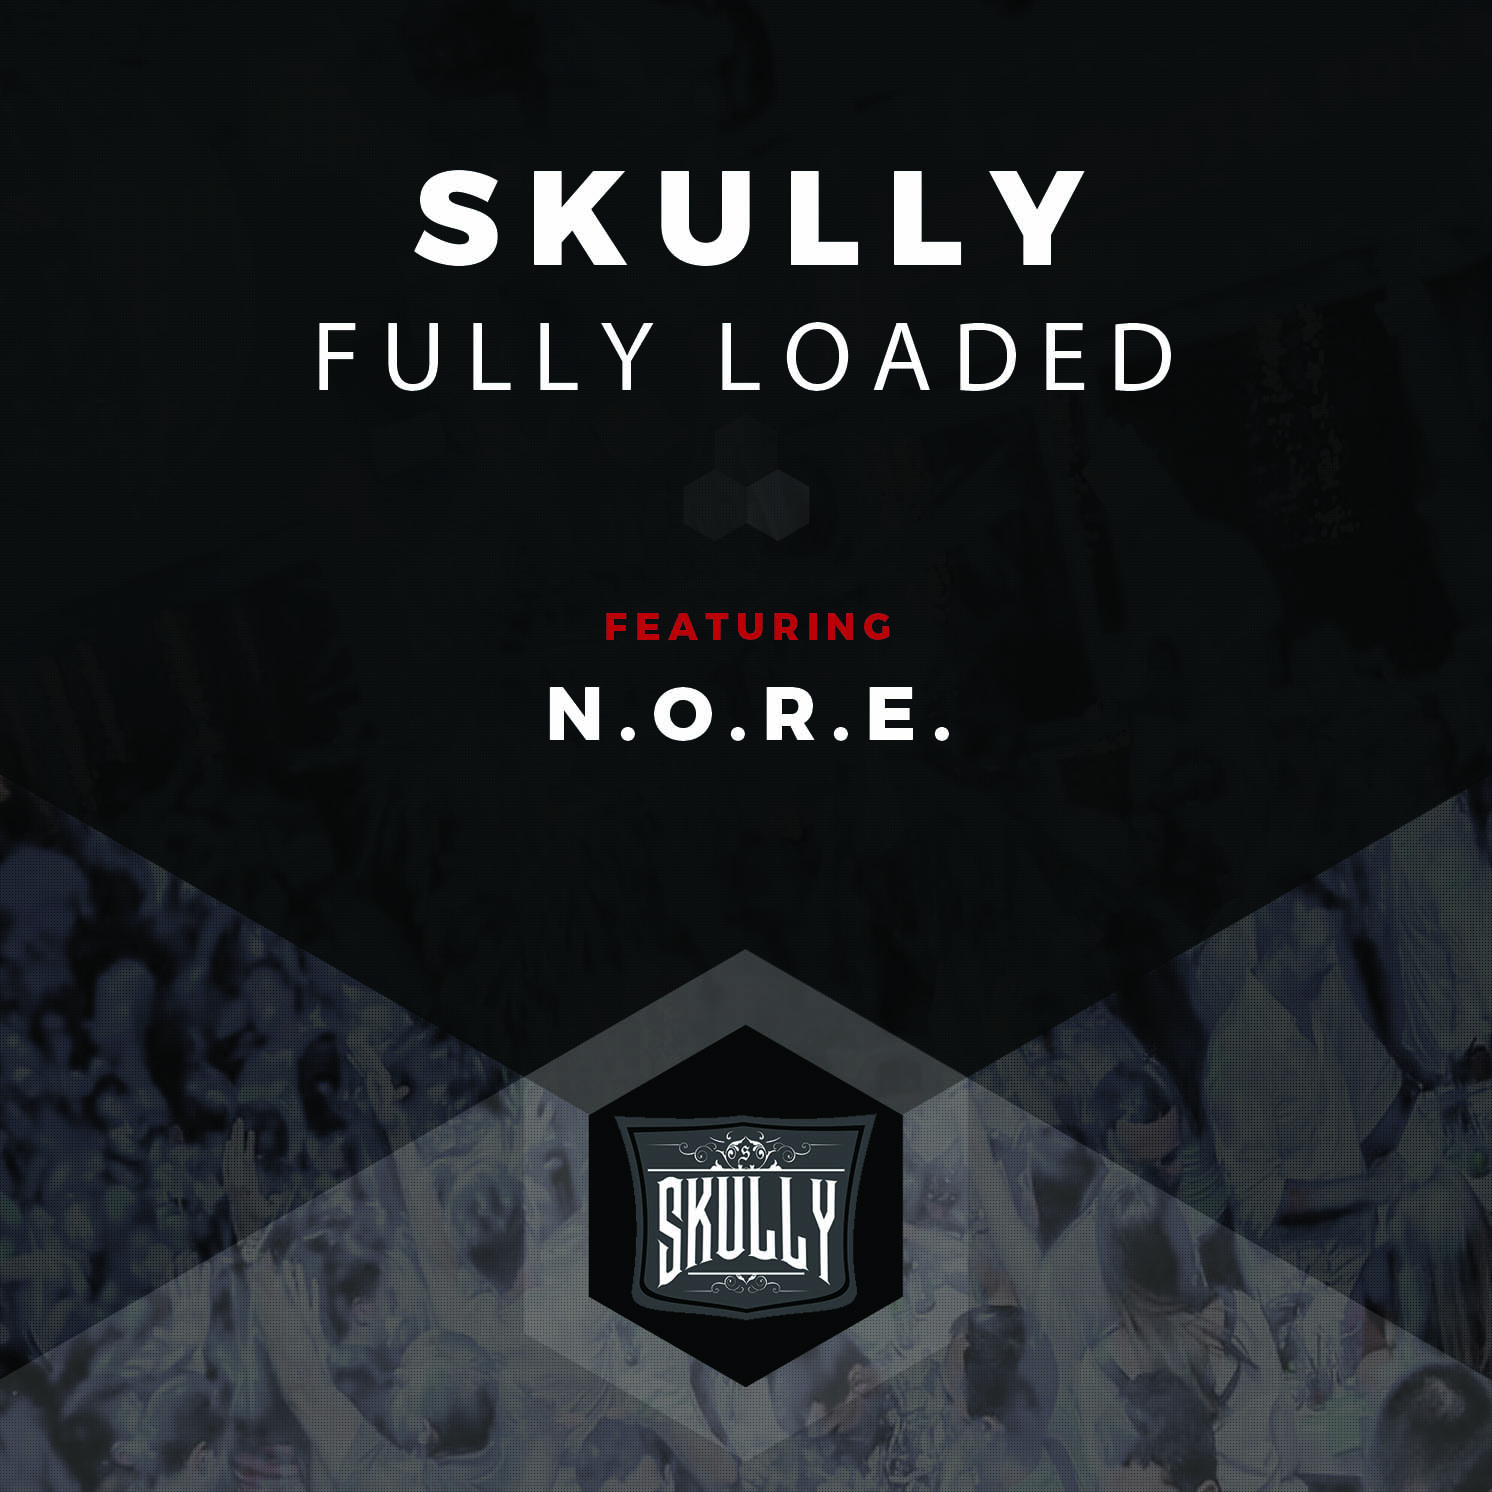 Skully_Fully_Loaded_cover